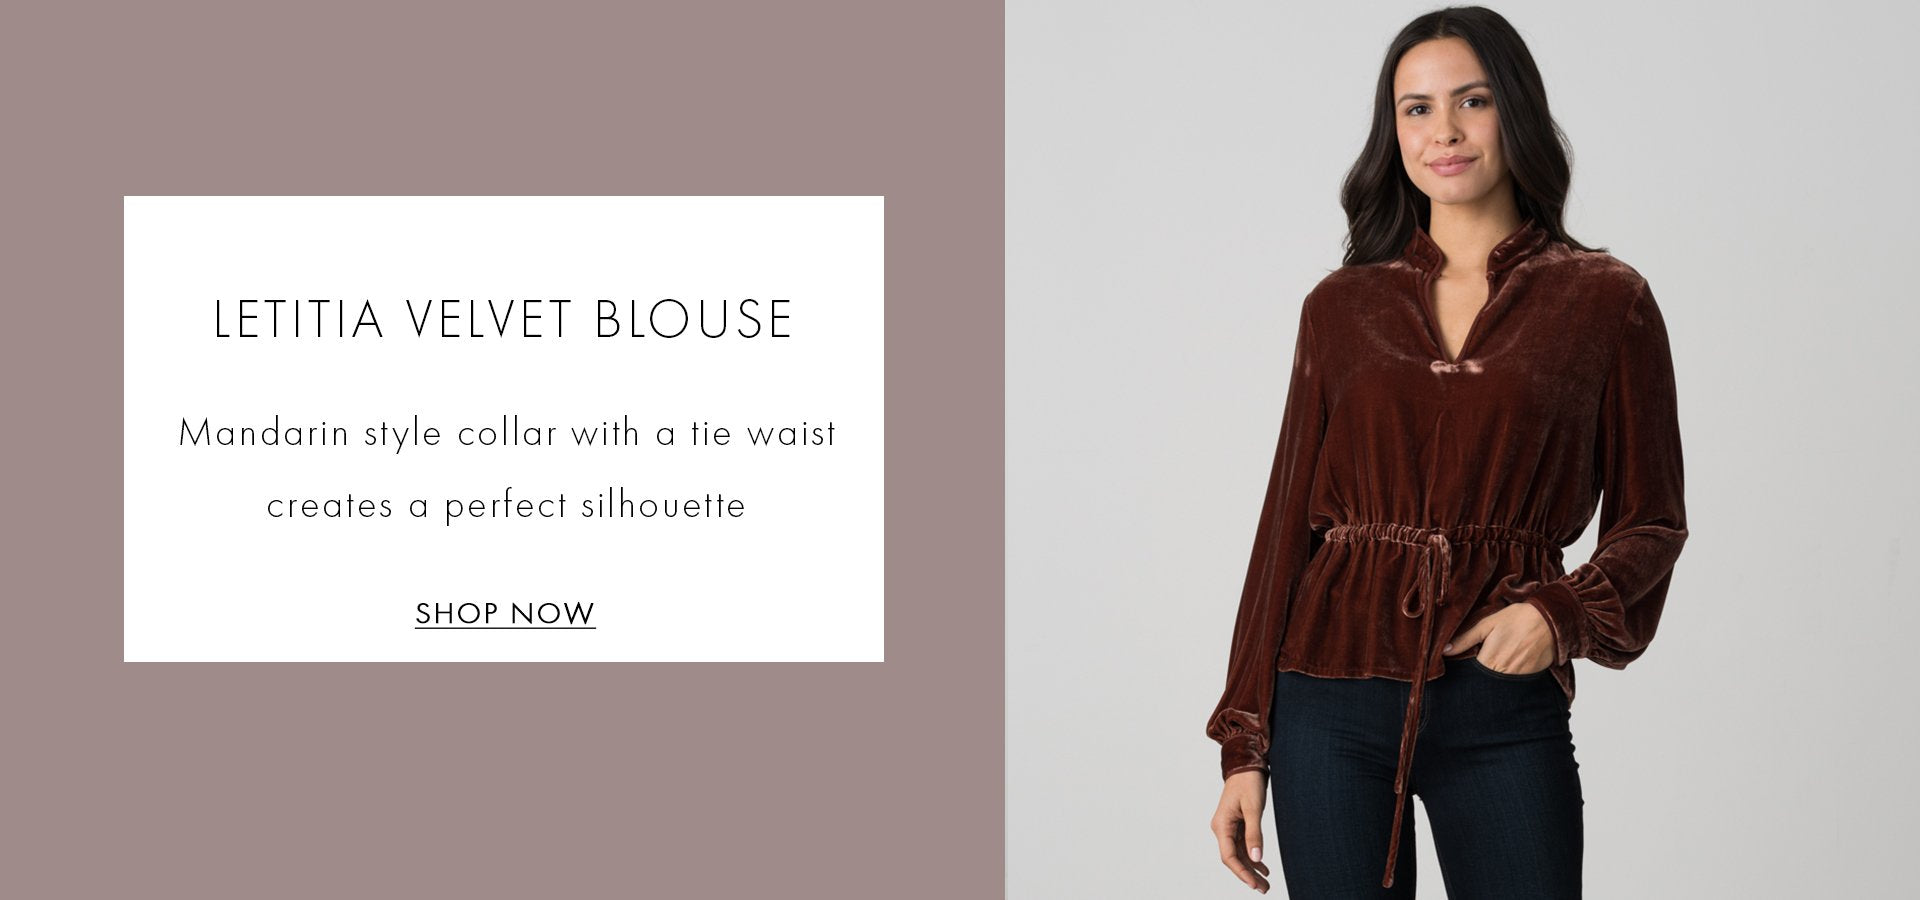 Letitia velvet blouse mandarin style collar with a tie waist creates a perfect silhouette